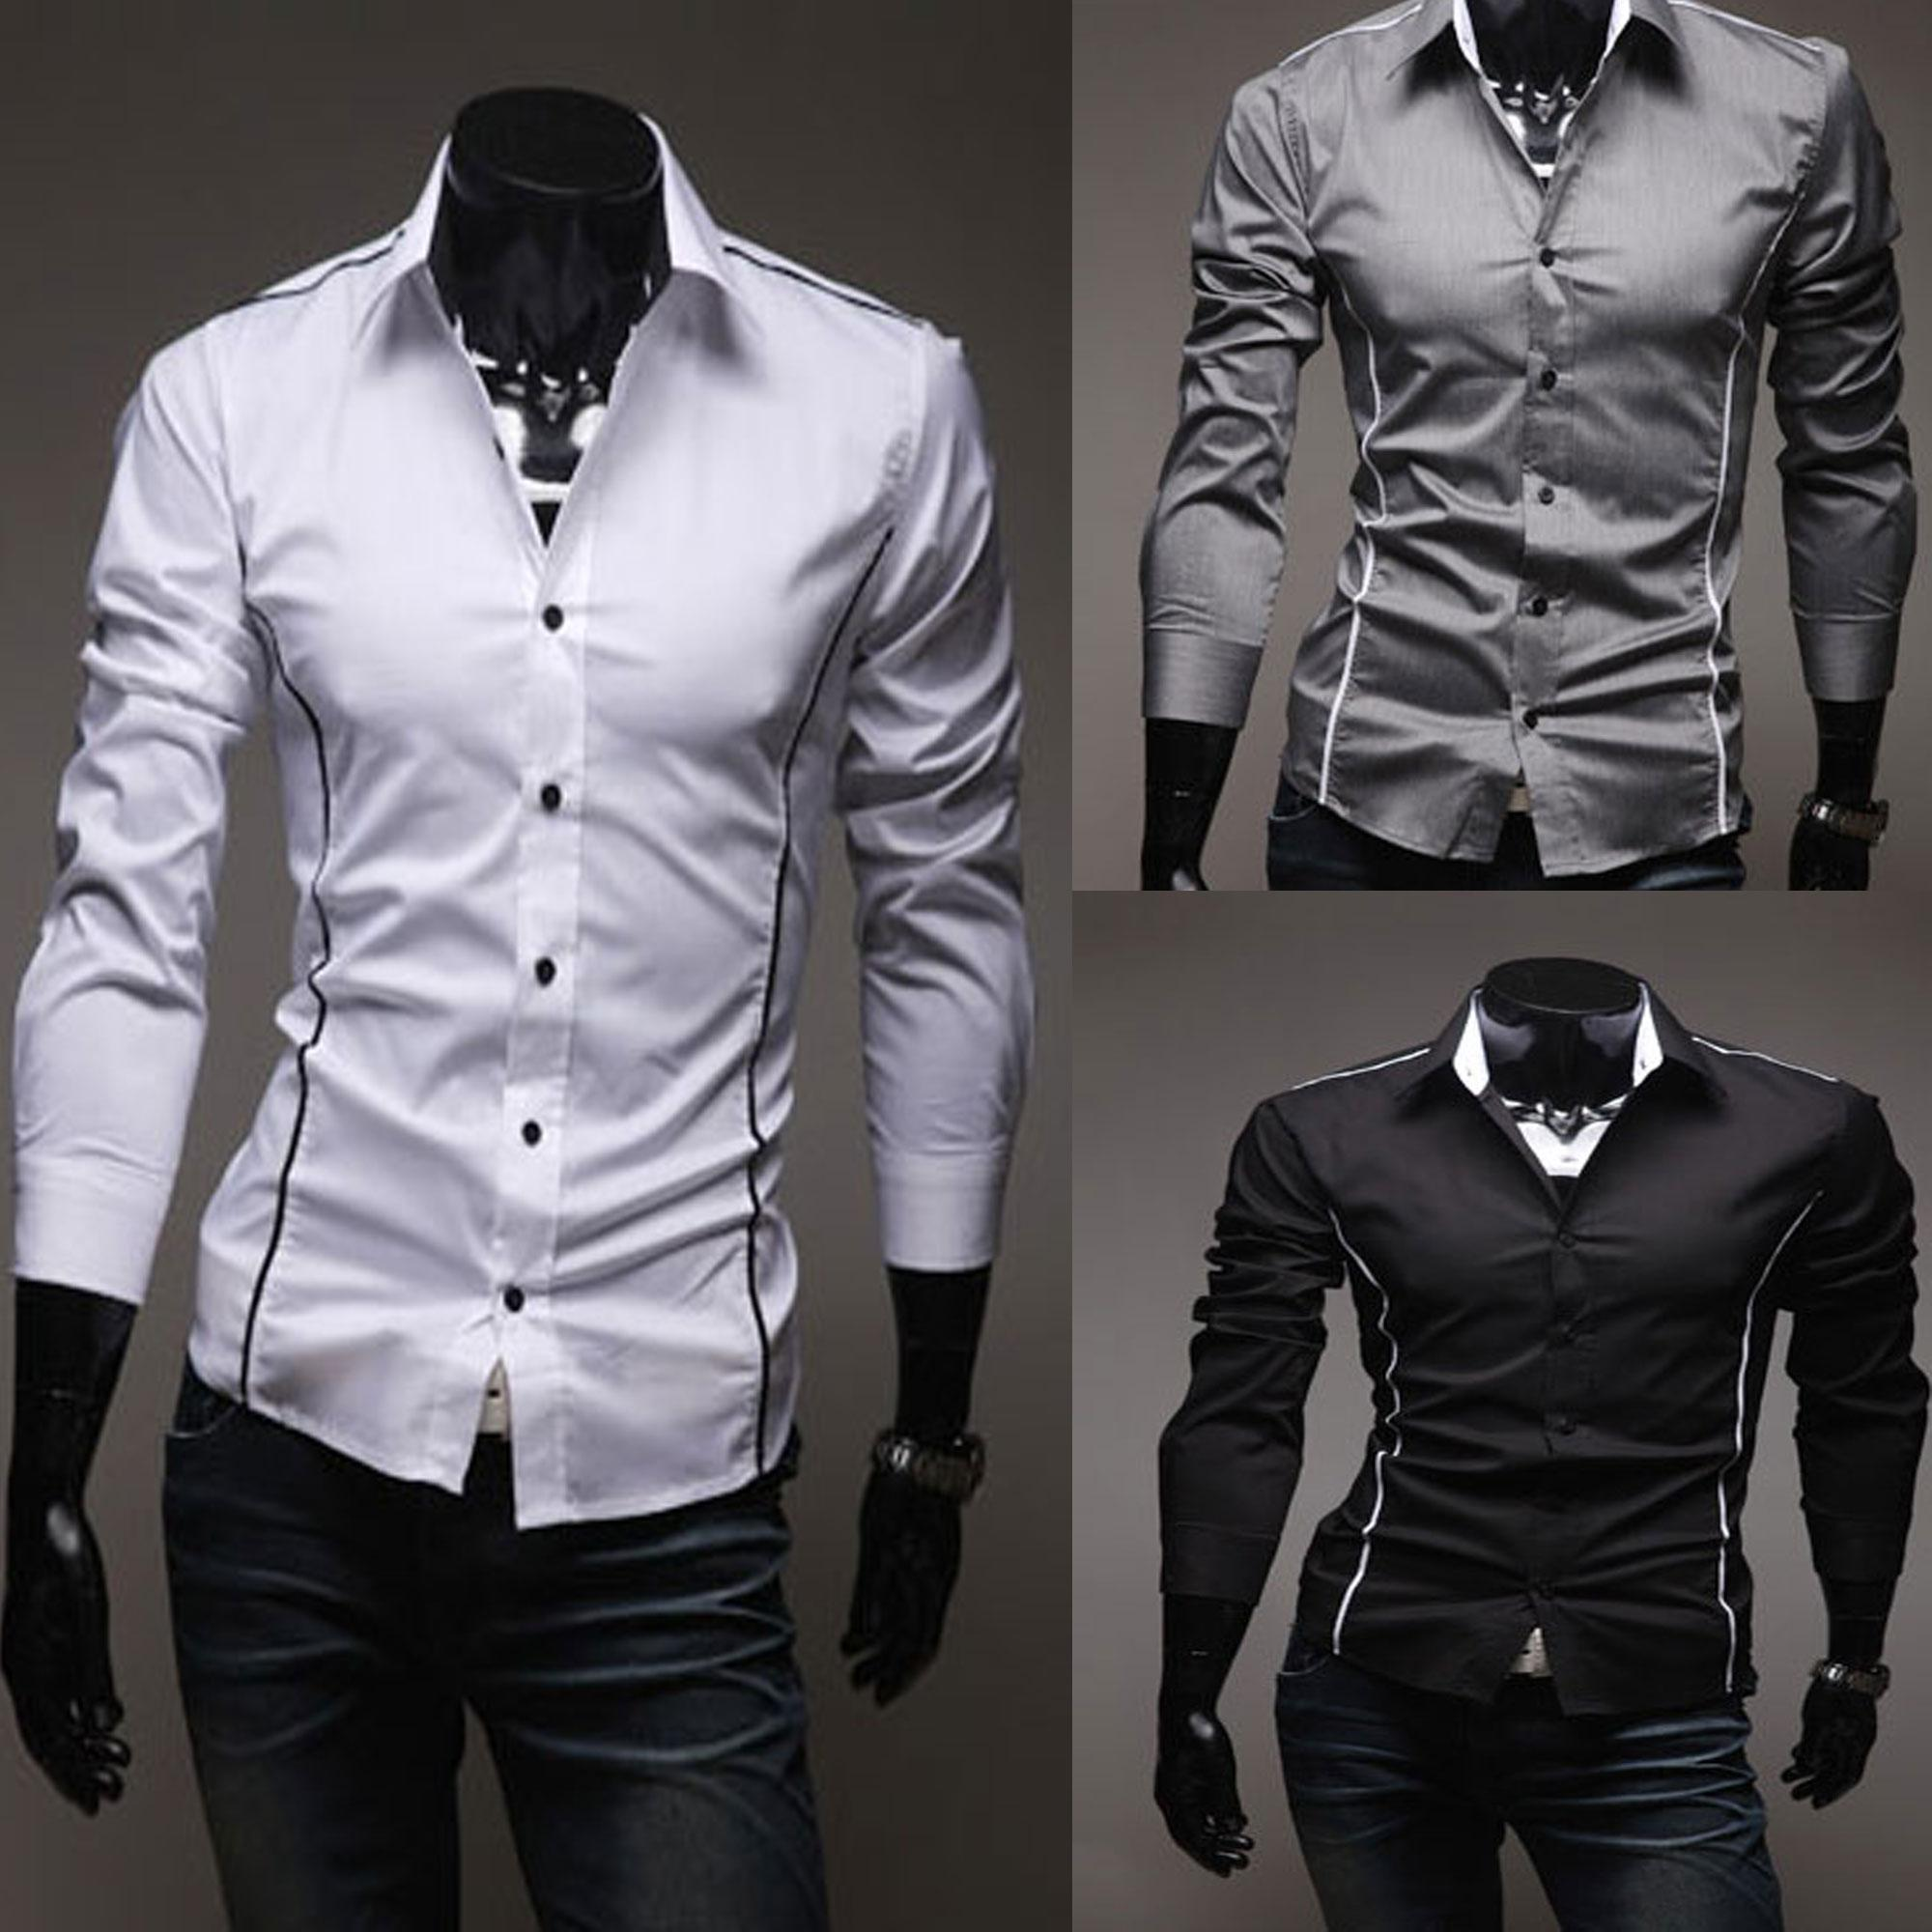 Wholesale Men's Designer Dress Shirts - Buy Cheap Men's Designer ...